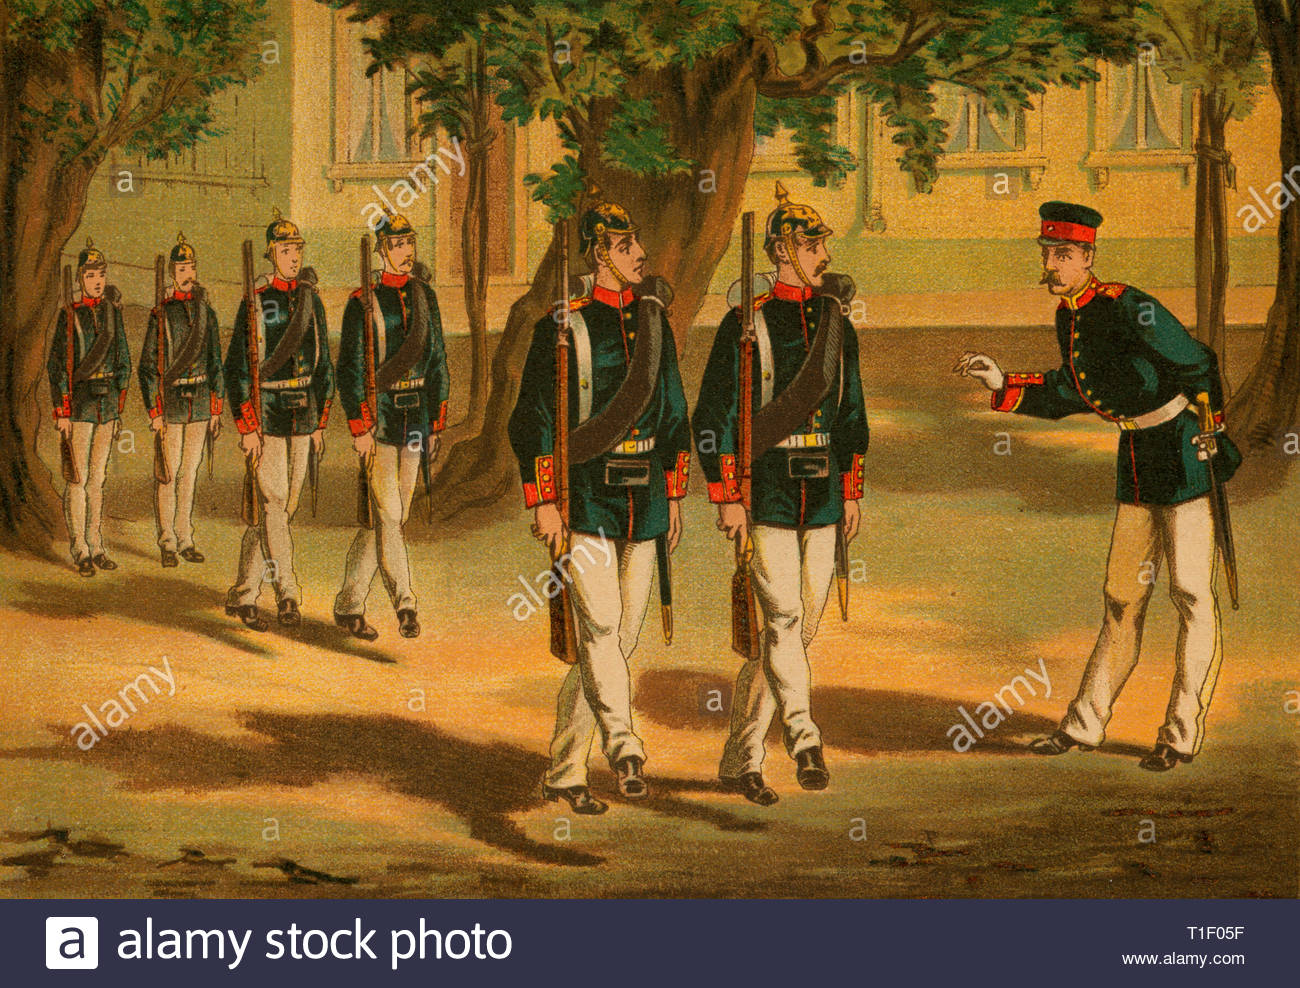 Germany, Thuringia, 4. Thuringian Infantry Regiment No. 95, coulered lithography, about 1890, published by A. Bergmann, Leipzig., Artist's Copyright must also be cleared - Stock Image